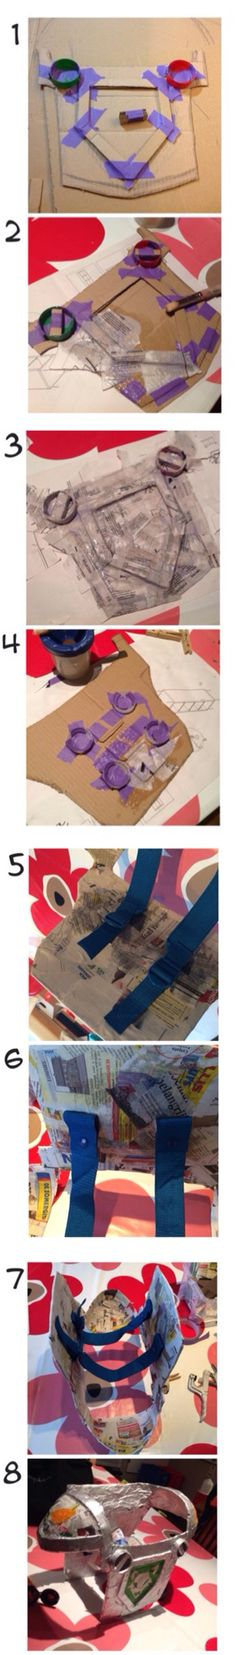 DIY Lego Nexo Knights harnass 1. Draw the harnass on cardboard & cut out - 2 layers cardboard for rim around  'logo' - plastic milk bottle caps for 'screws'.  2. Cover everything with newspaper and 'art attack'-glue. 3. Let it dry 4. Do same with back 4b.I used top of 5l bottle of water & cut it in half for sholderparts 5. I used straps of an old backpack & attached it with a piece from the bottle i used earlier & attached it with newspaper & glue & kamsnaps 8. Paint & finishing touch!